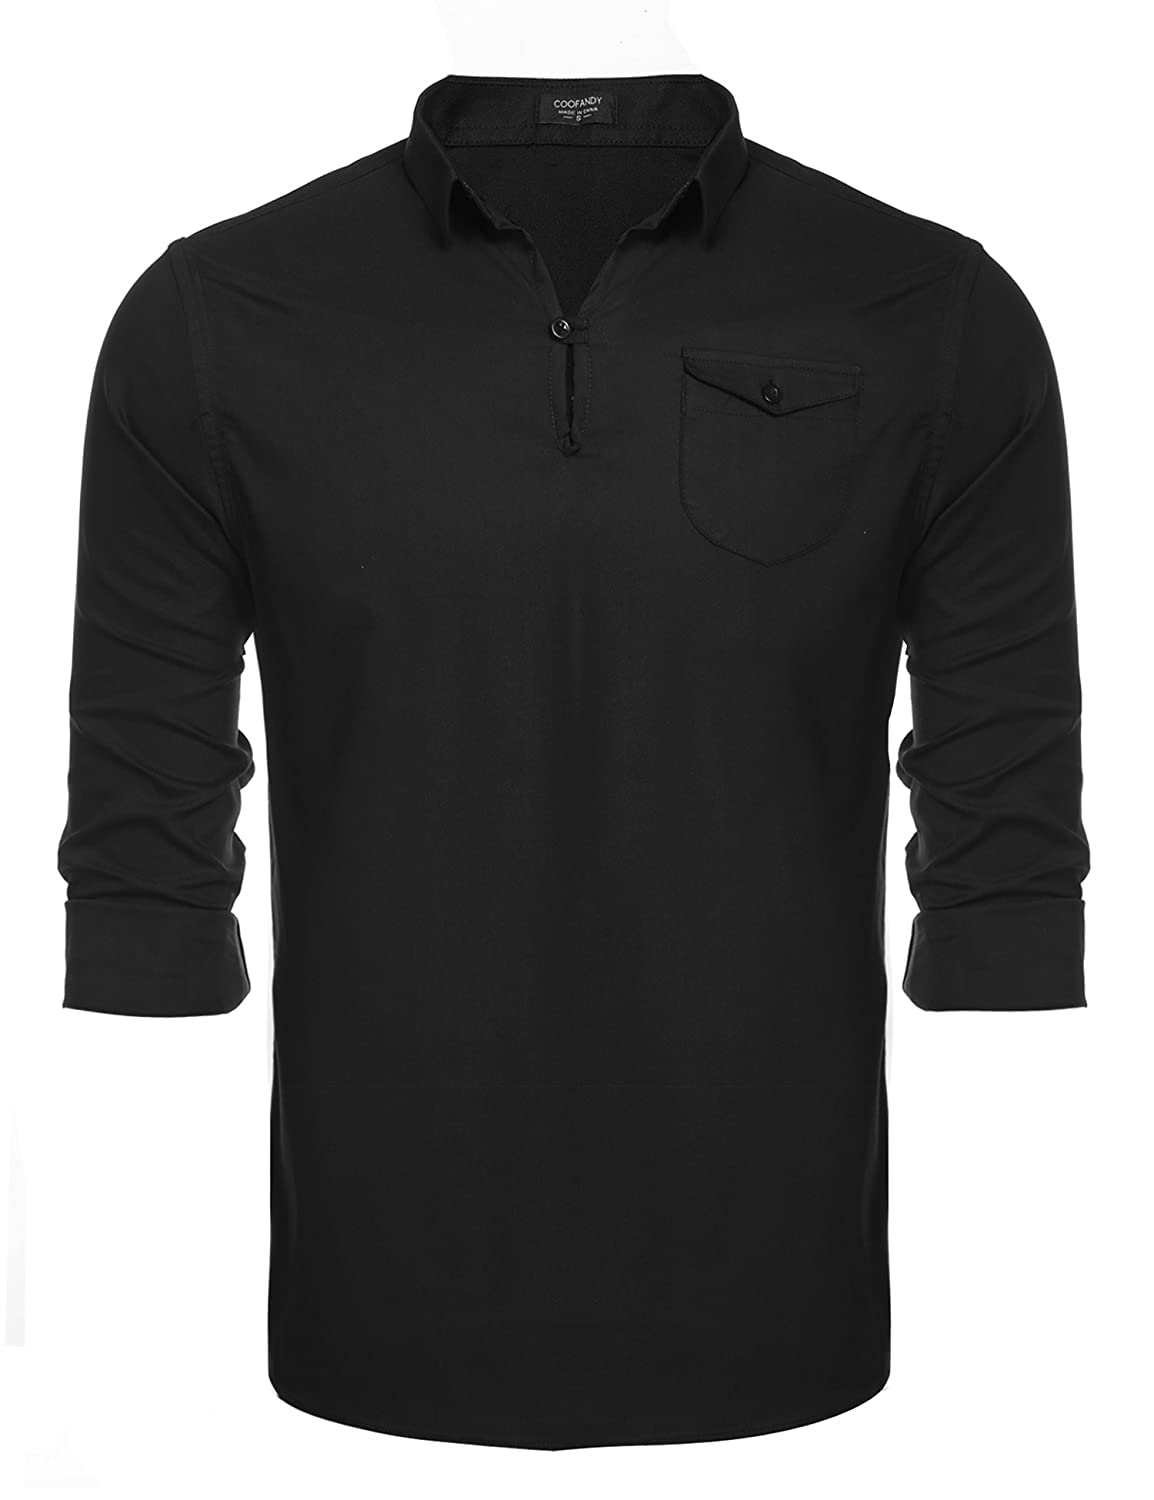 Coofandy Mens Henley Neck Shirt Long Sleeve Shirts Casual V Neck